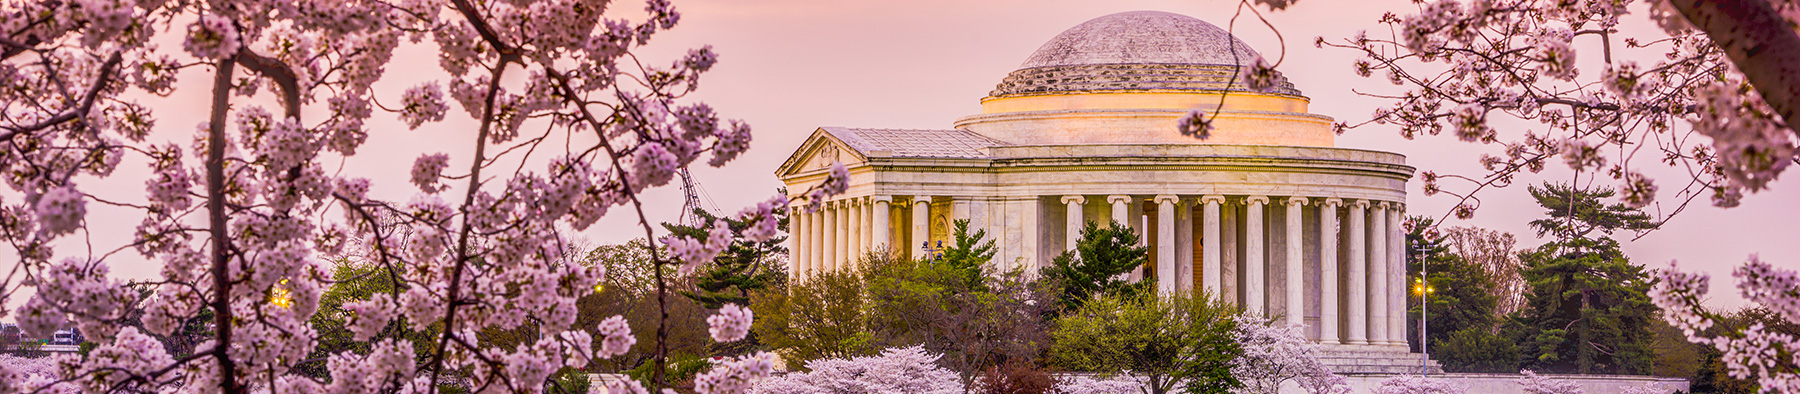 Jefferson Memorial with Cherry Blossoms in Washington DC